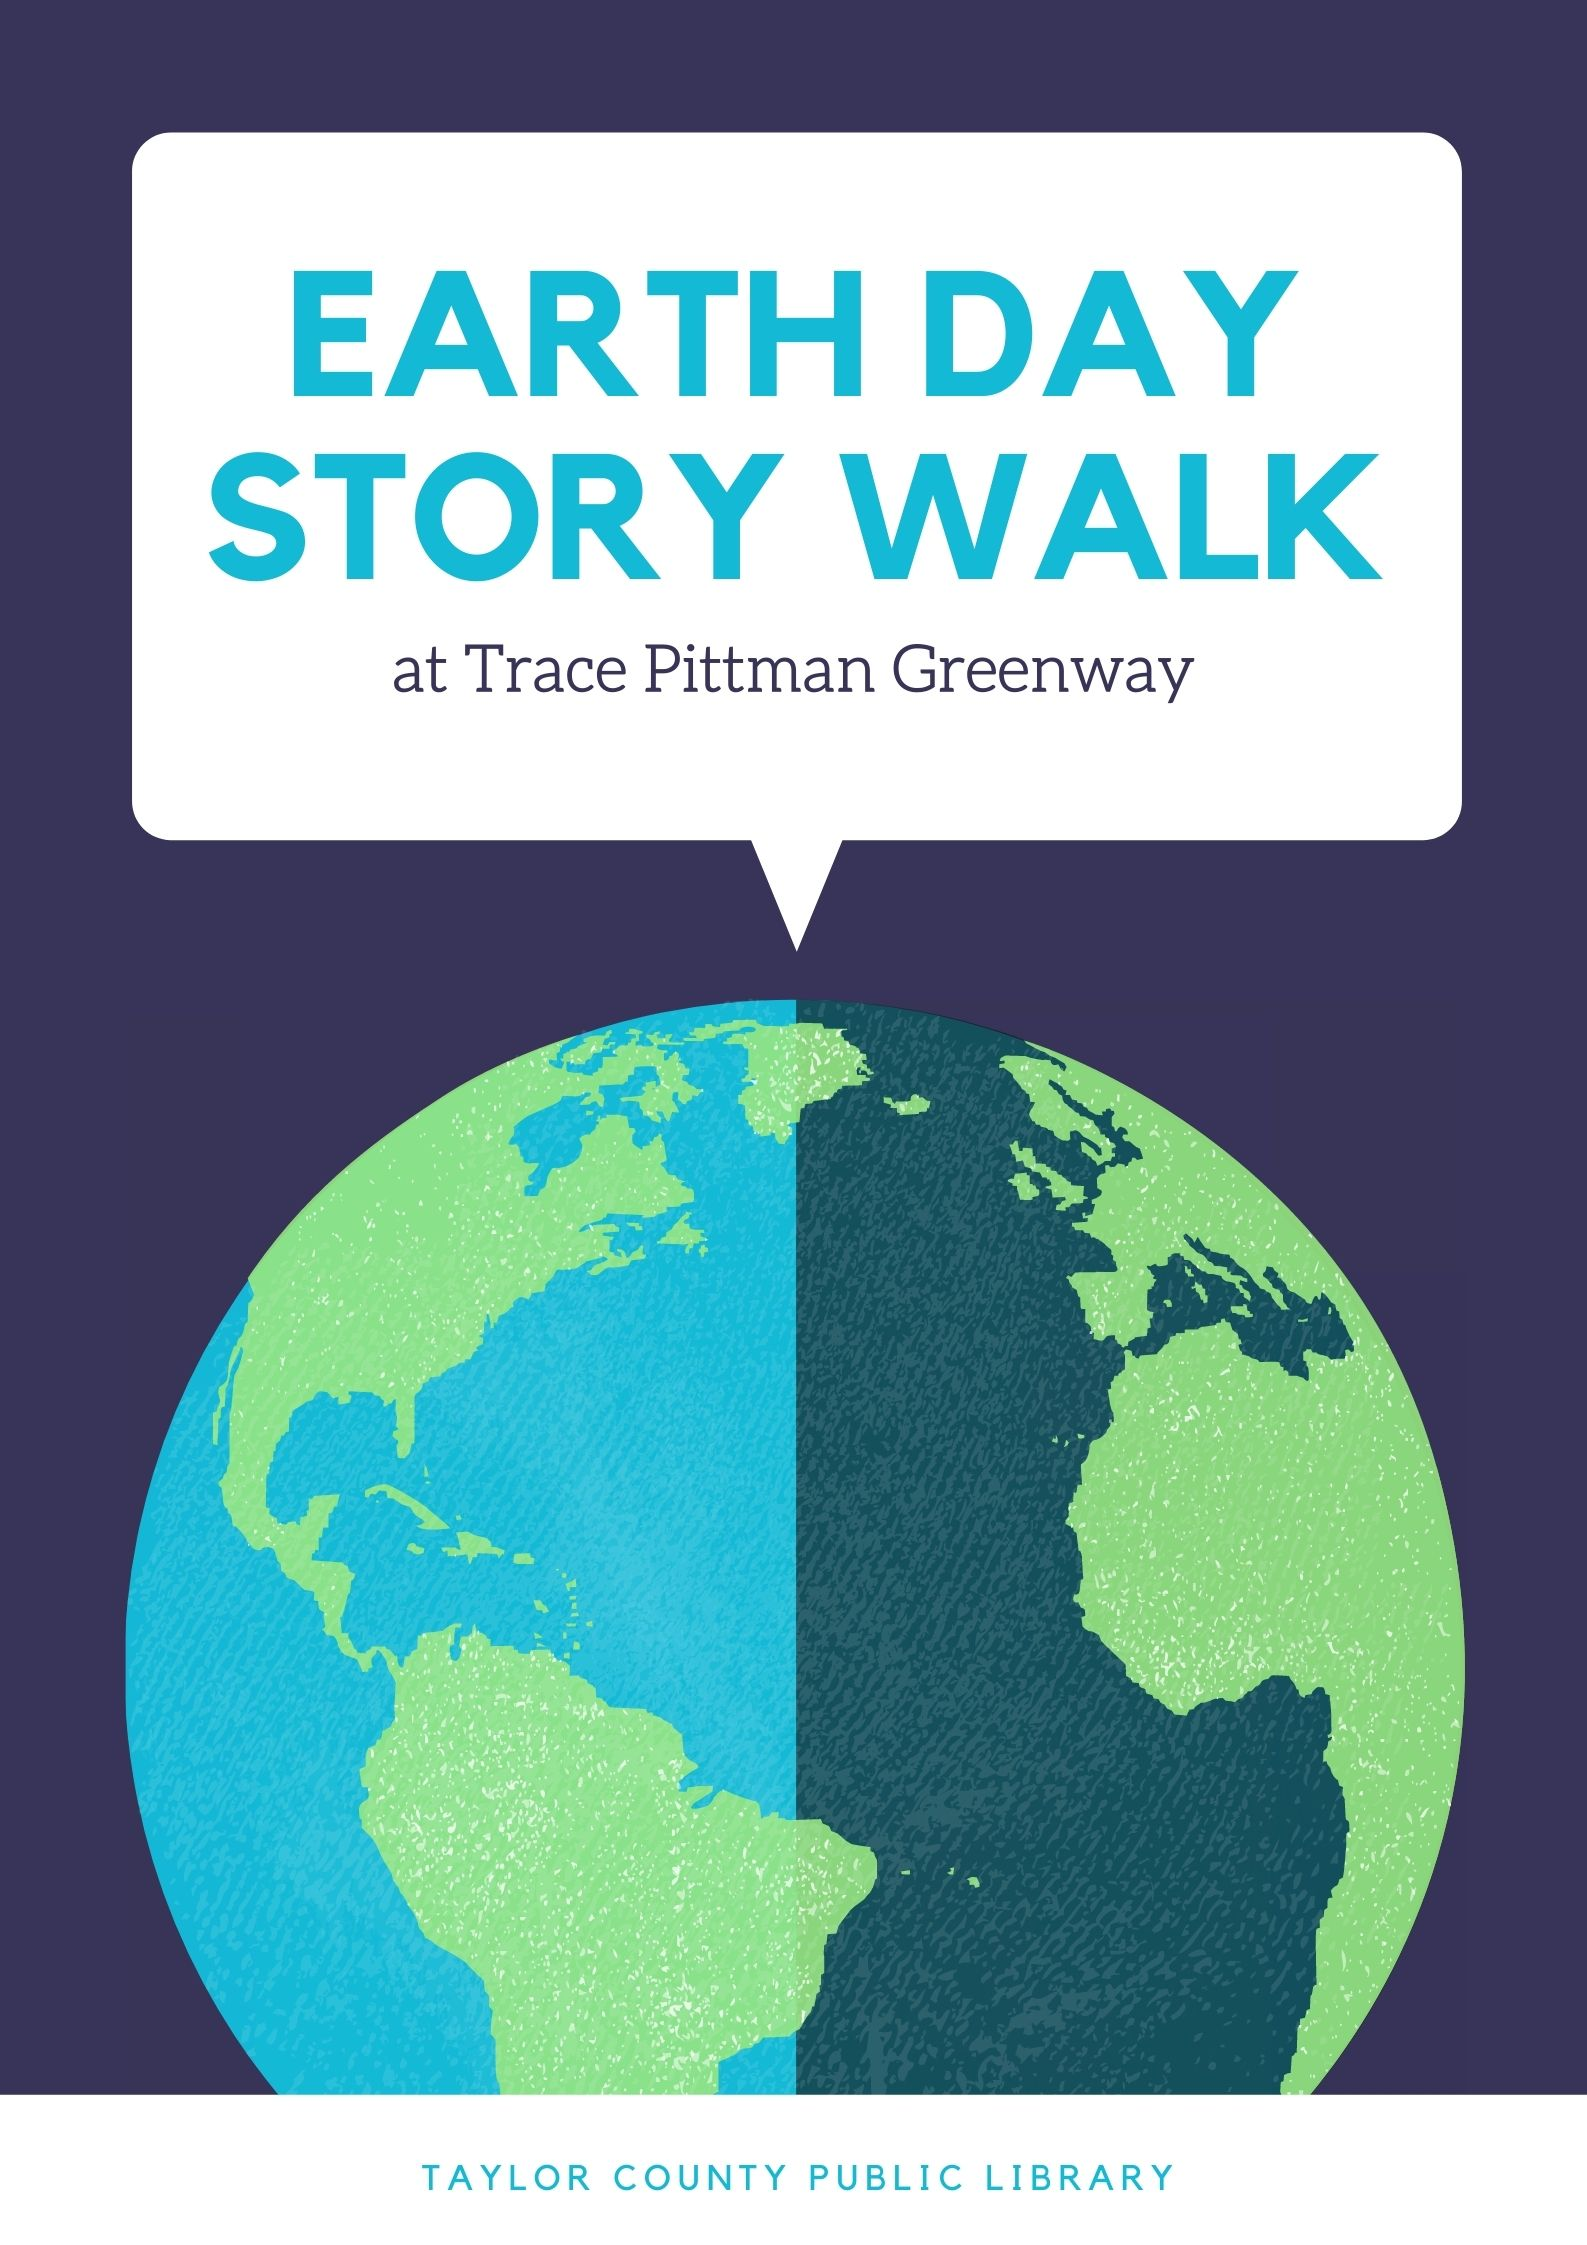 Earth Day Story Walk